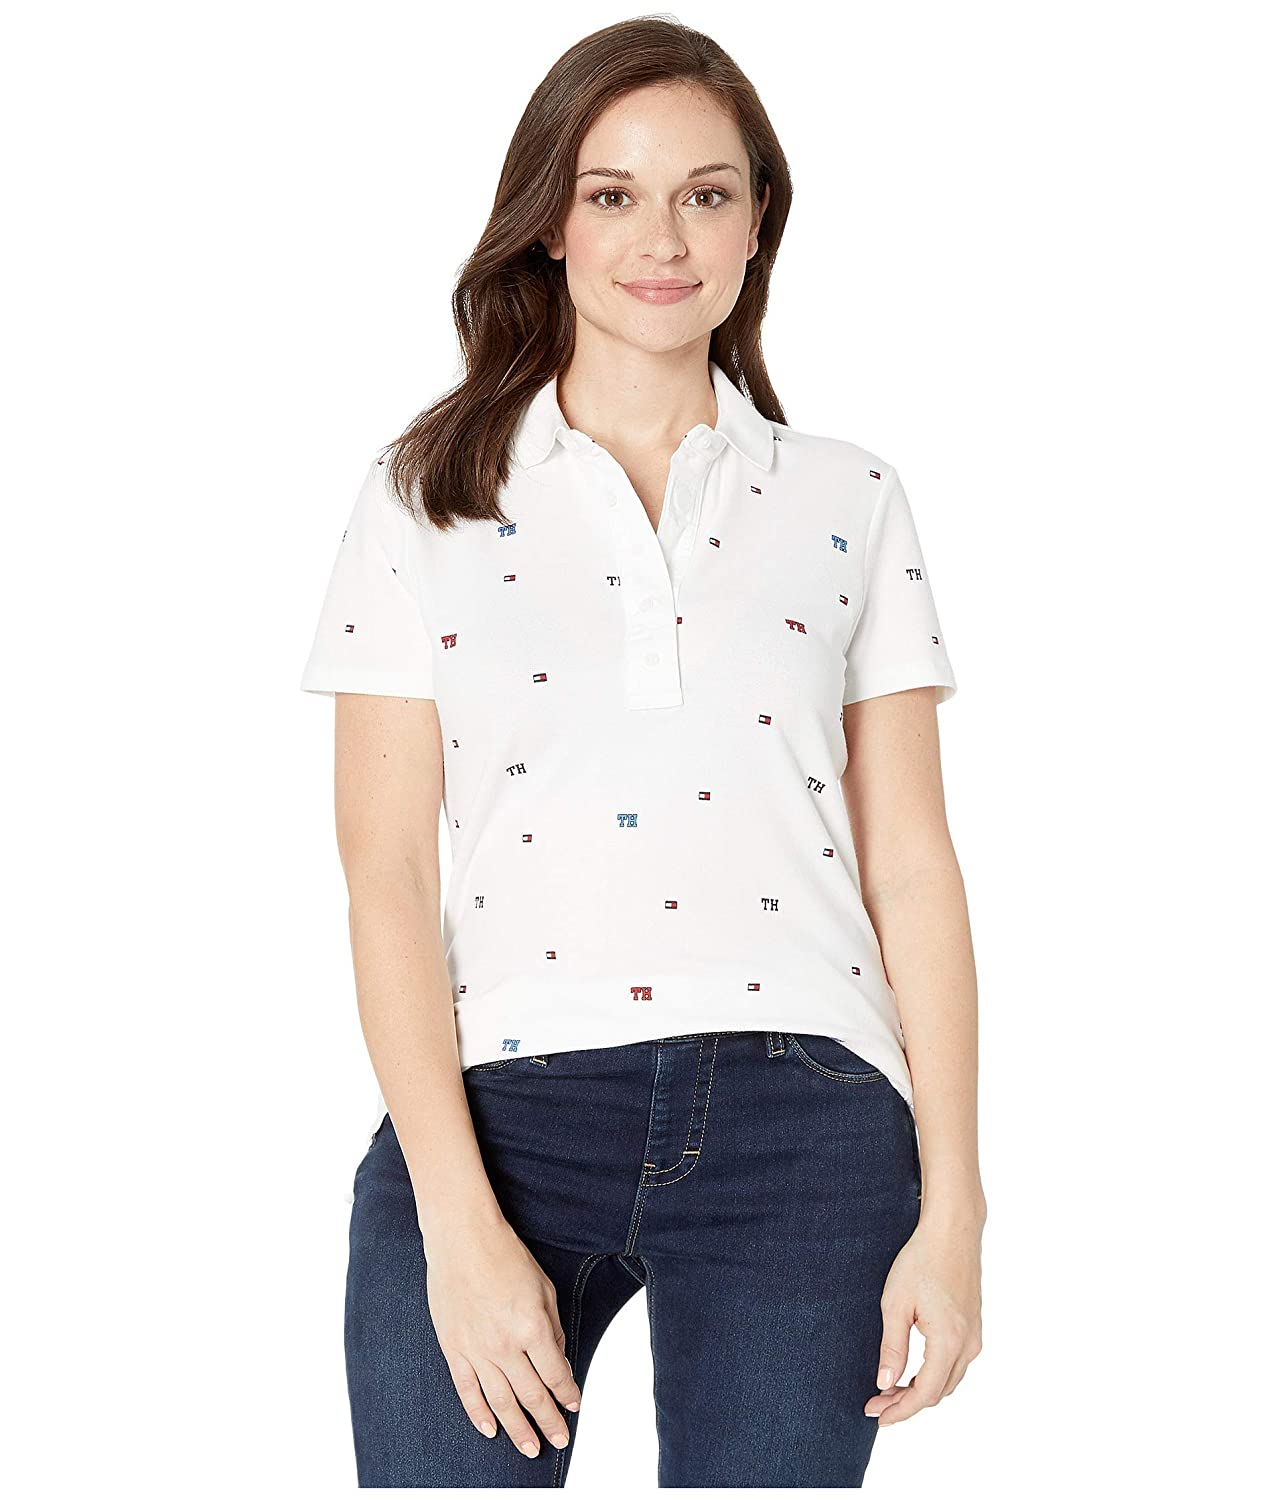 Tommy Hilfiger Womens ADP W Torrence Th Critter Polo Button Down Shirt